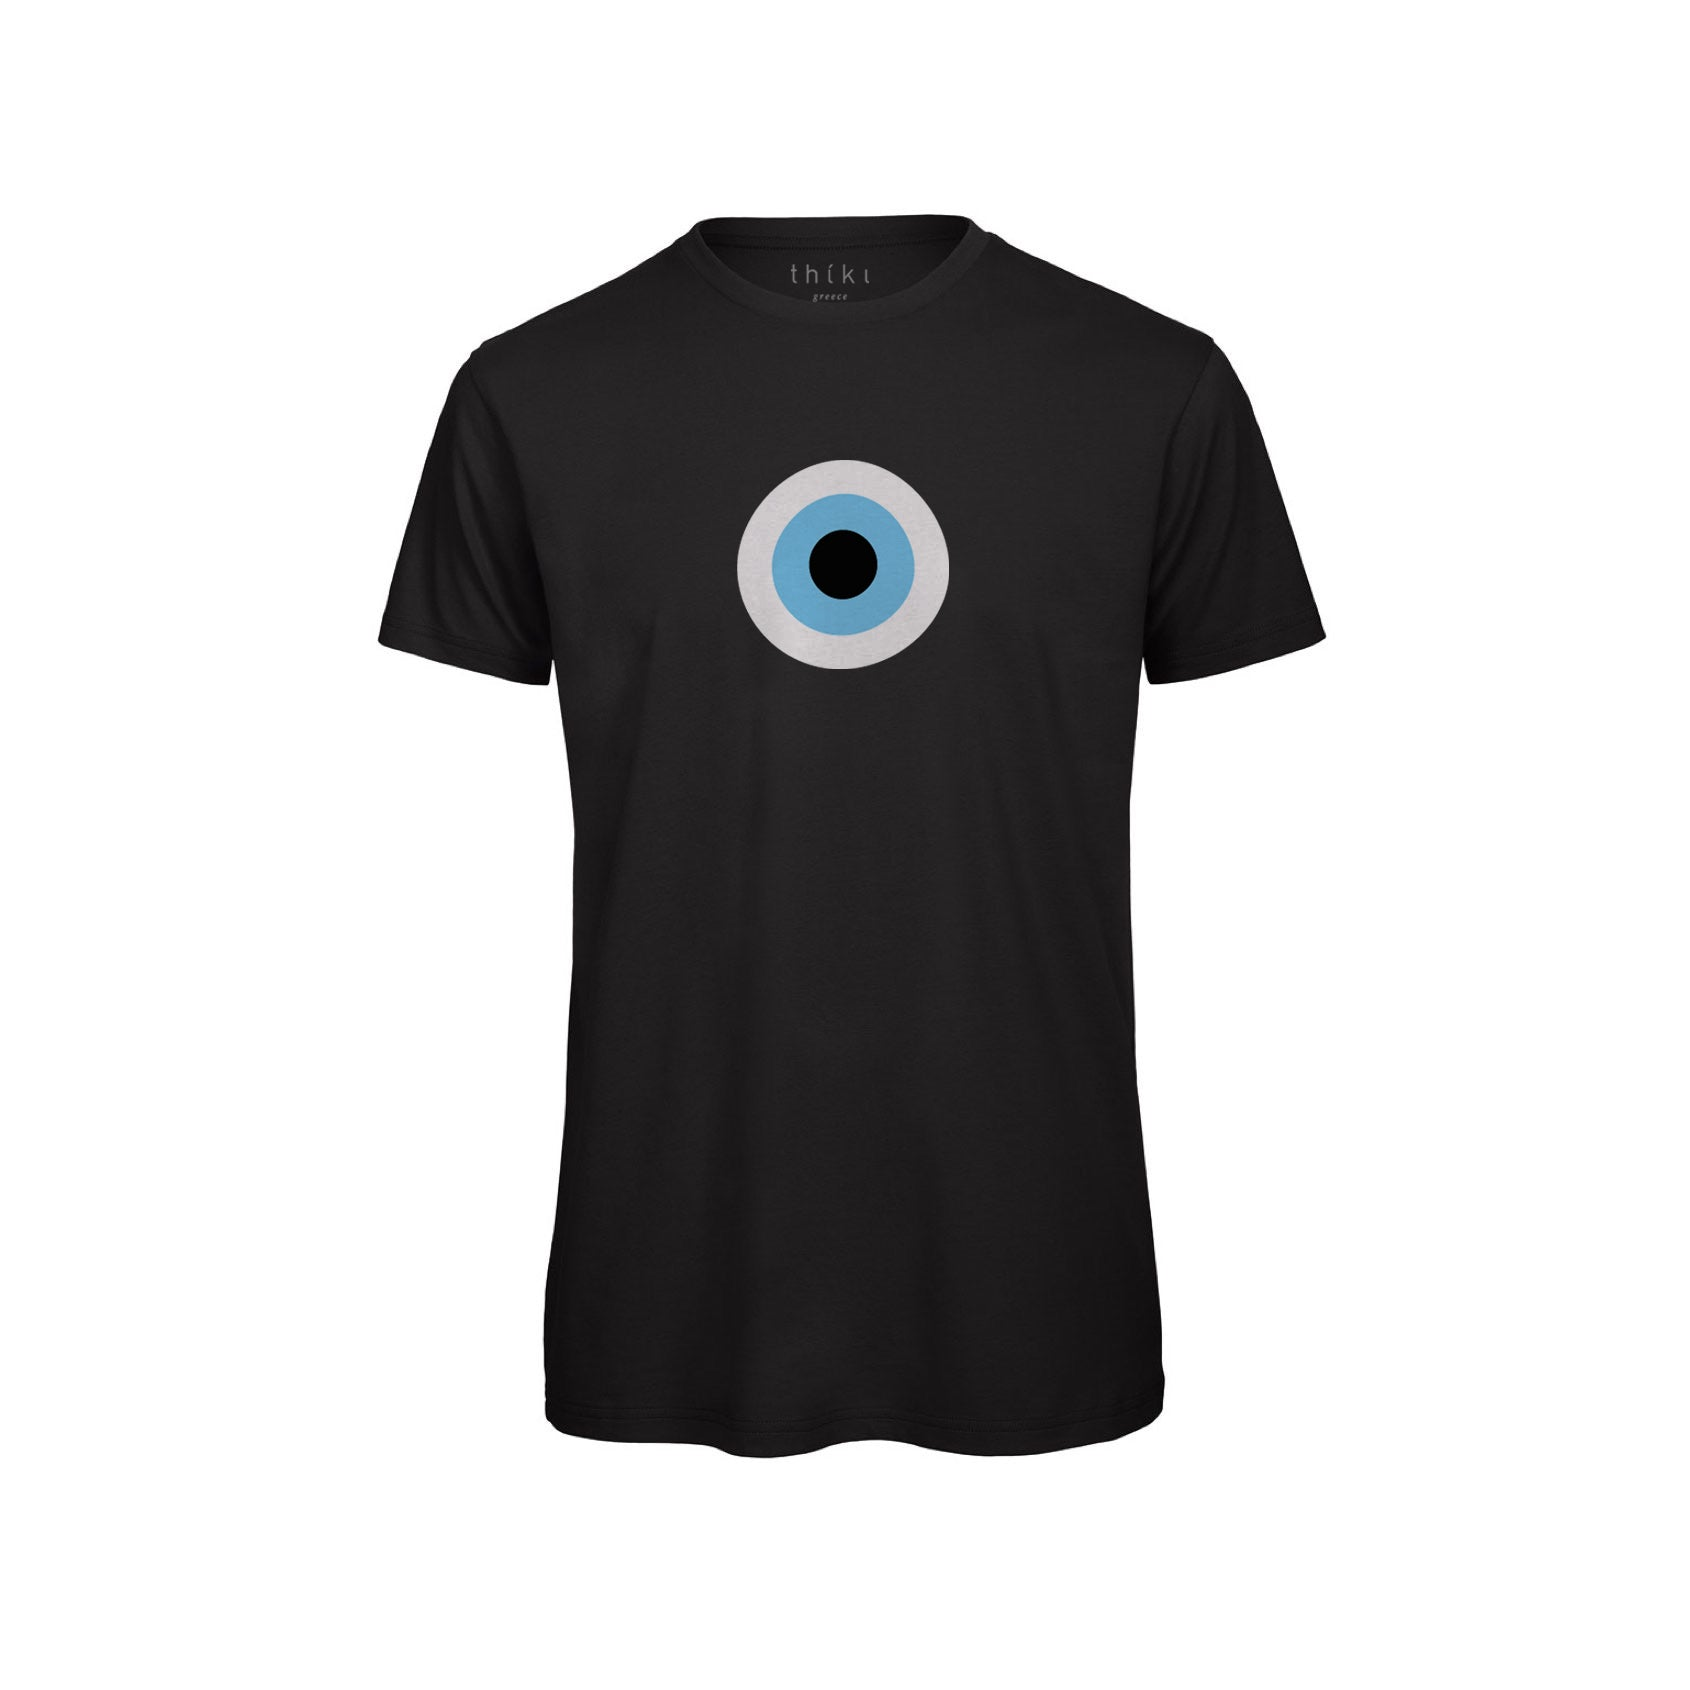 The Black Evil Eye T-shirt